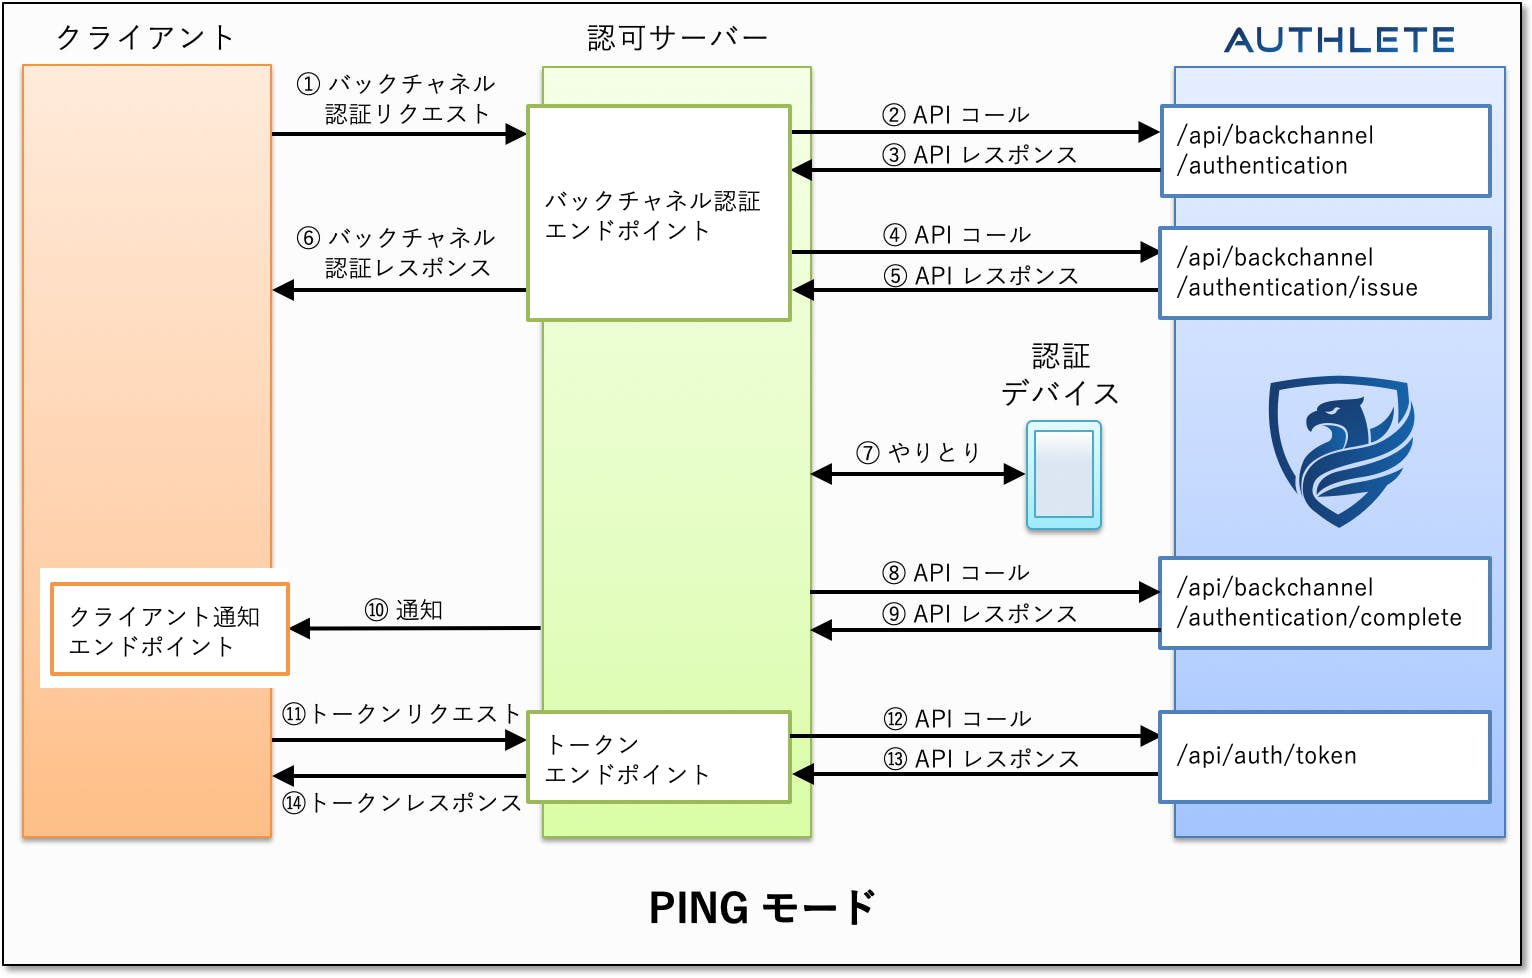 ciba-ping-mode-authlete.png